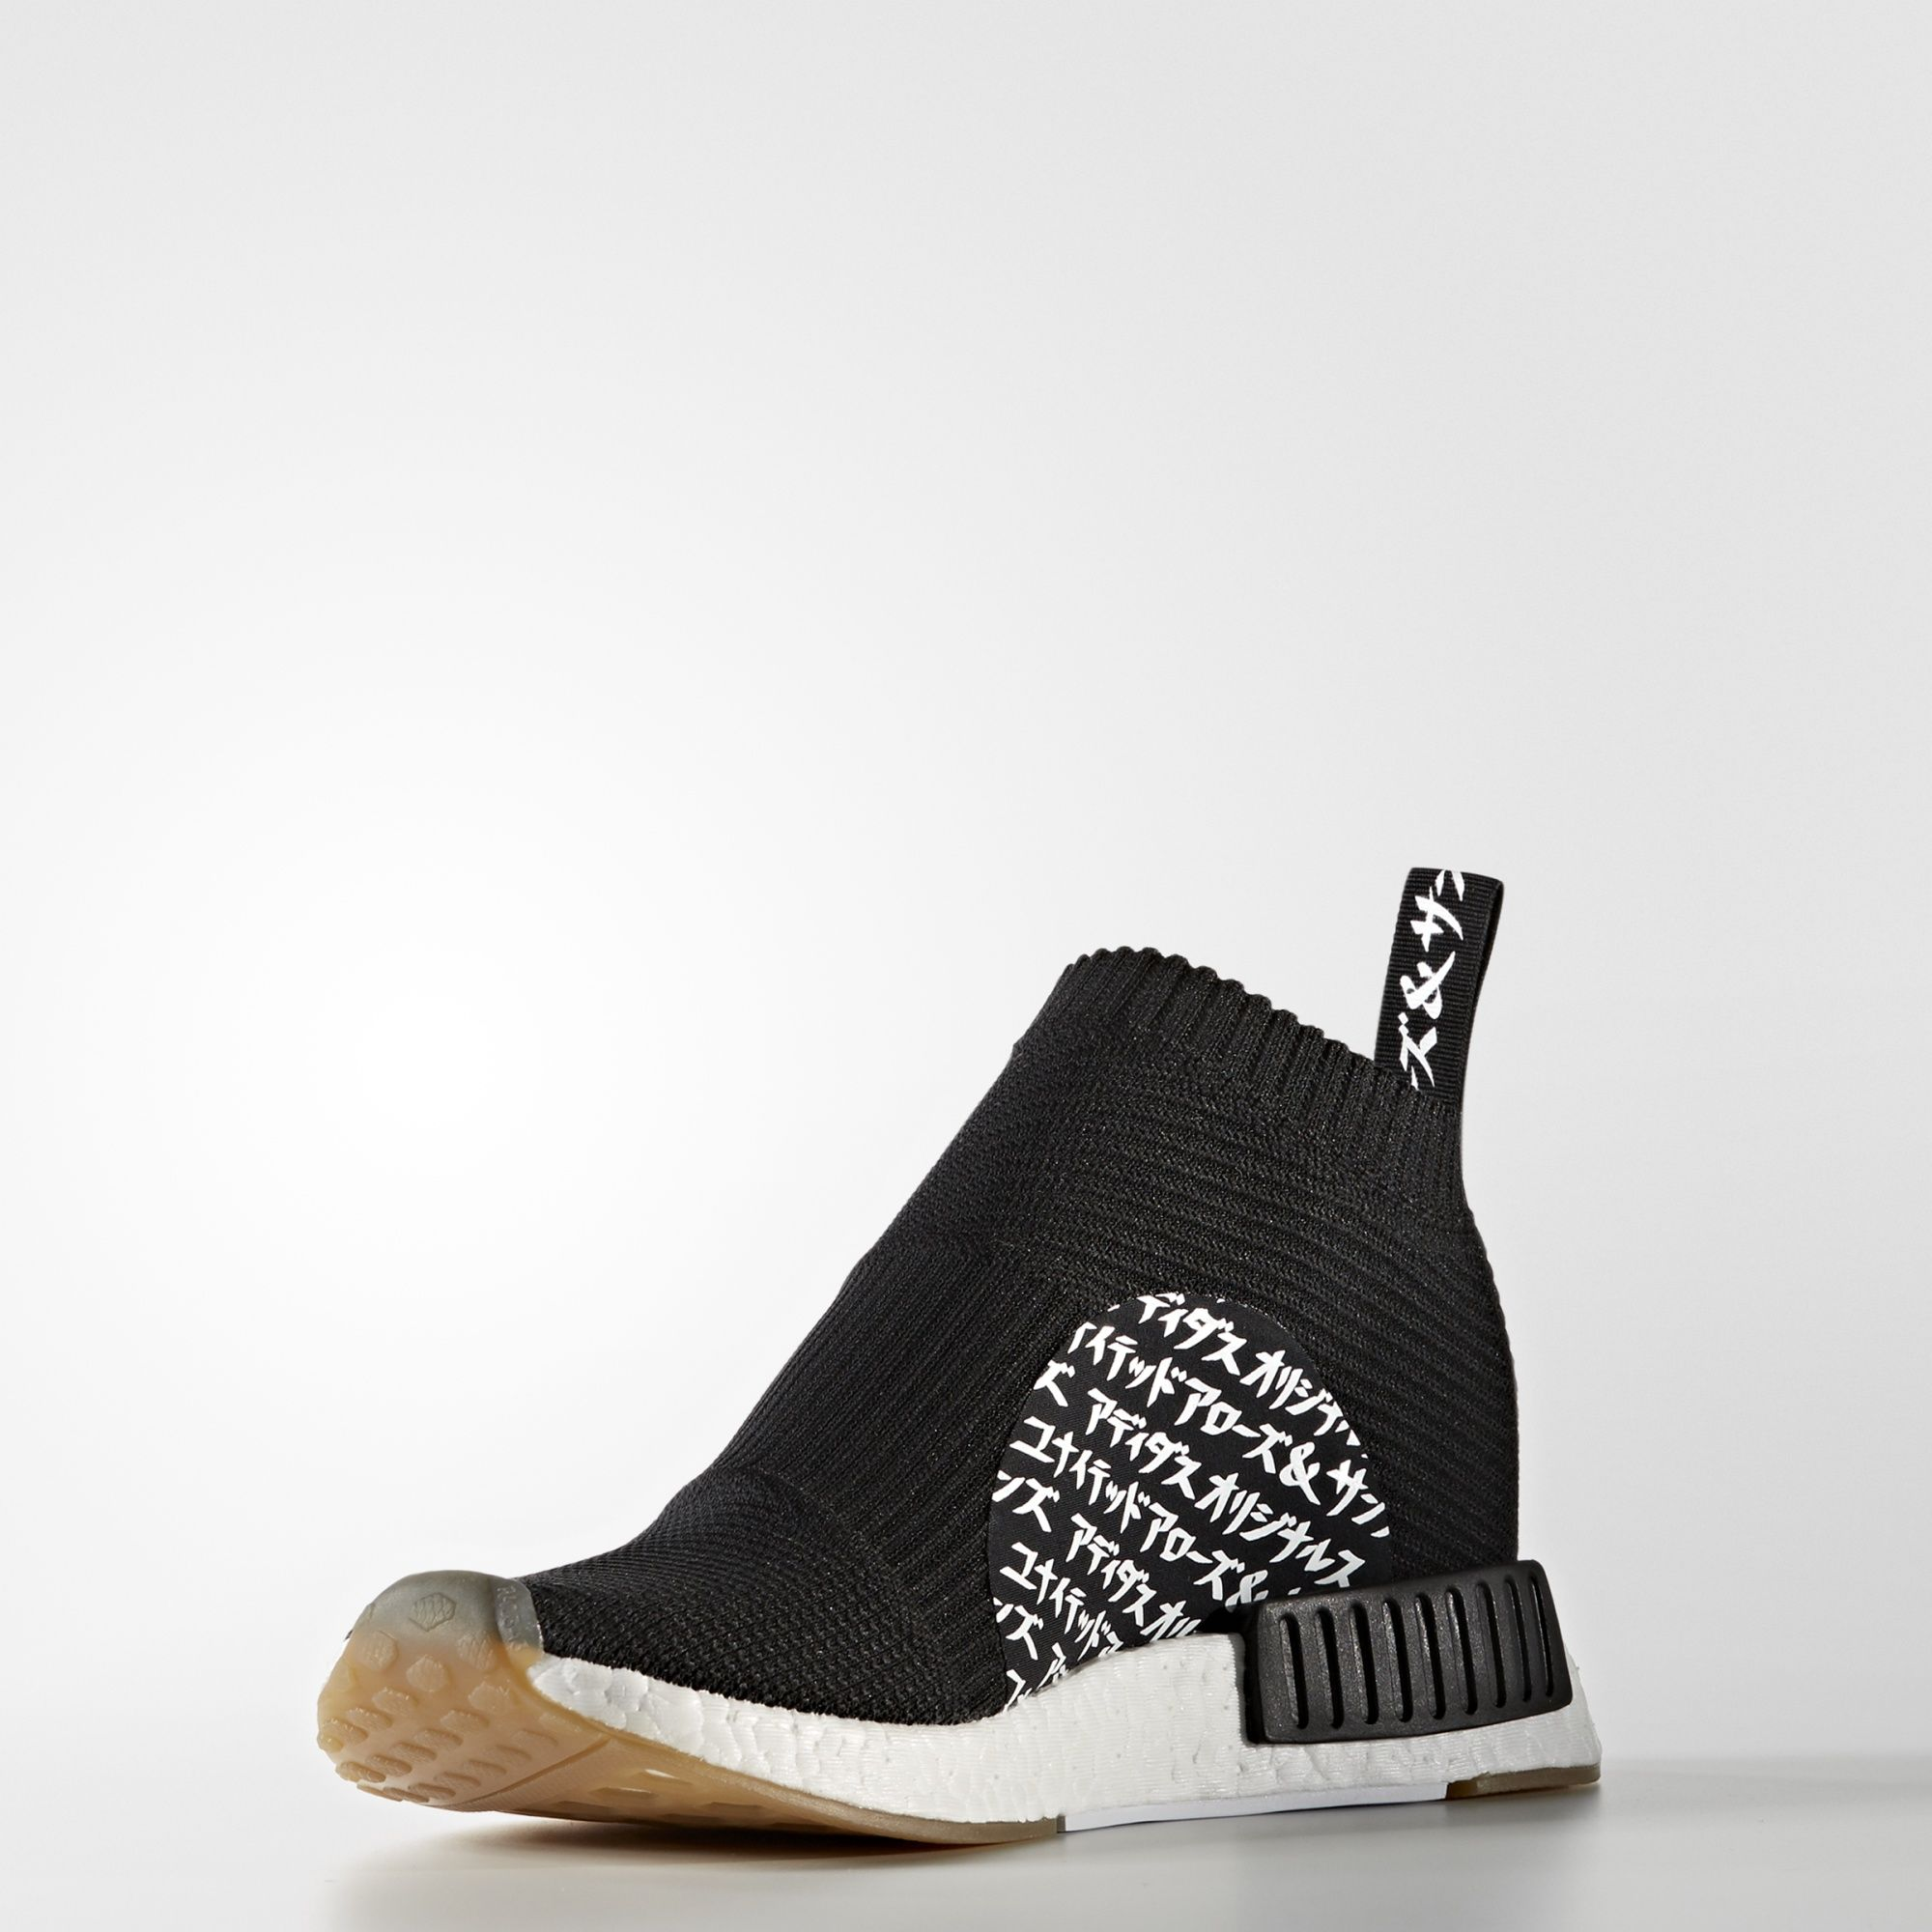 3771c924f86c4 Adidas Adidas NMD CS1 x United Arrows   Sons US 10.5 · UK 10 · EU ...